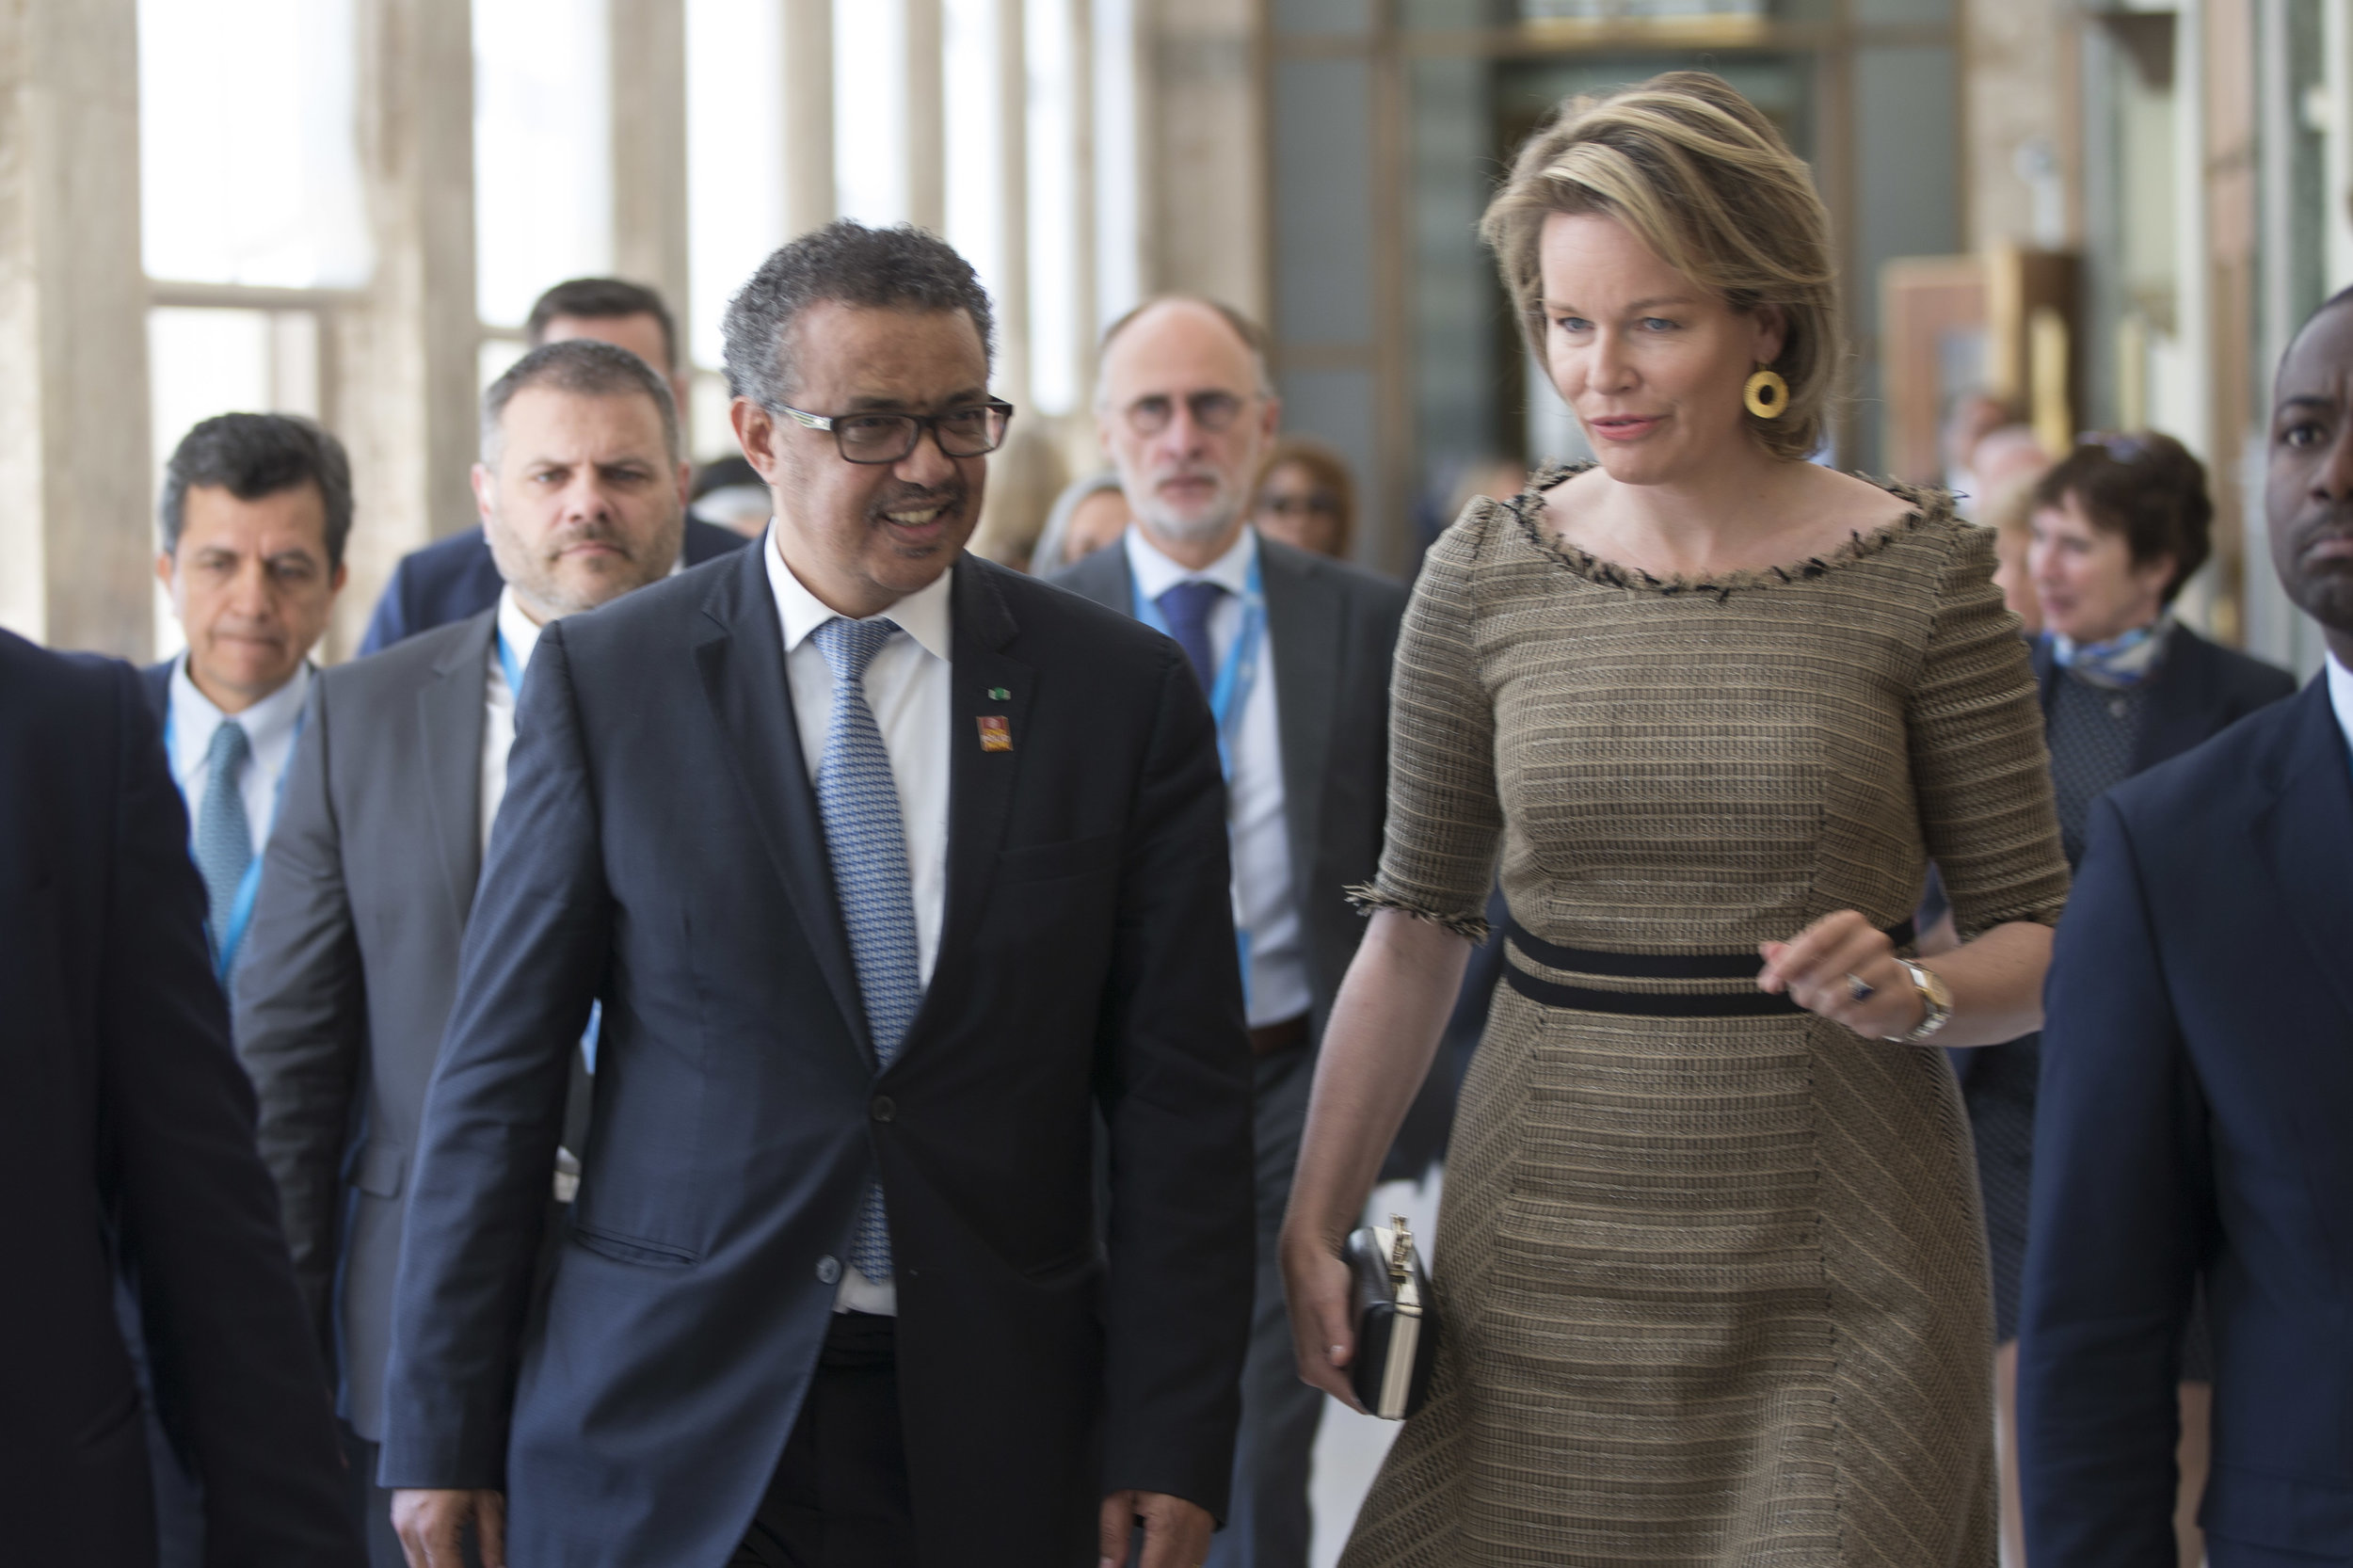 Dr. Tedros Adhanom Ghebreyesus, Director General of WHO (left) and Her Majesty Queen Mathilde of the Belgians (right) at the 72nd World Health Assembly in Geneva, Switzerland on 20 May, 2019.